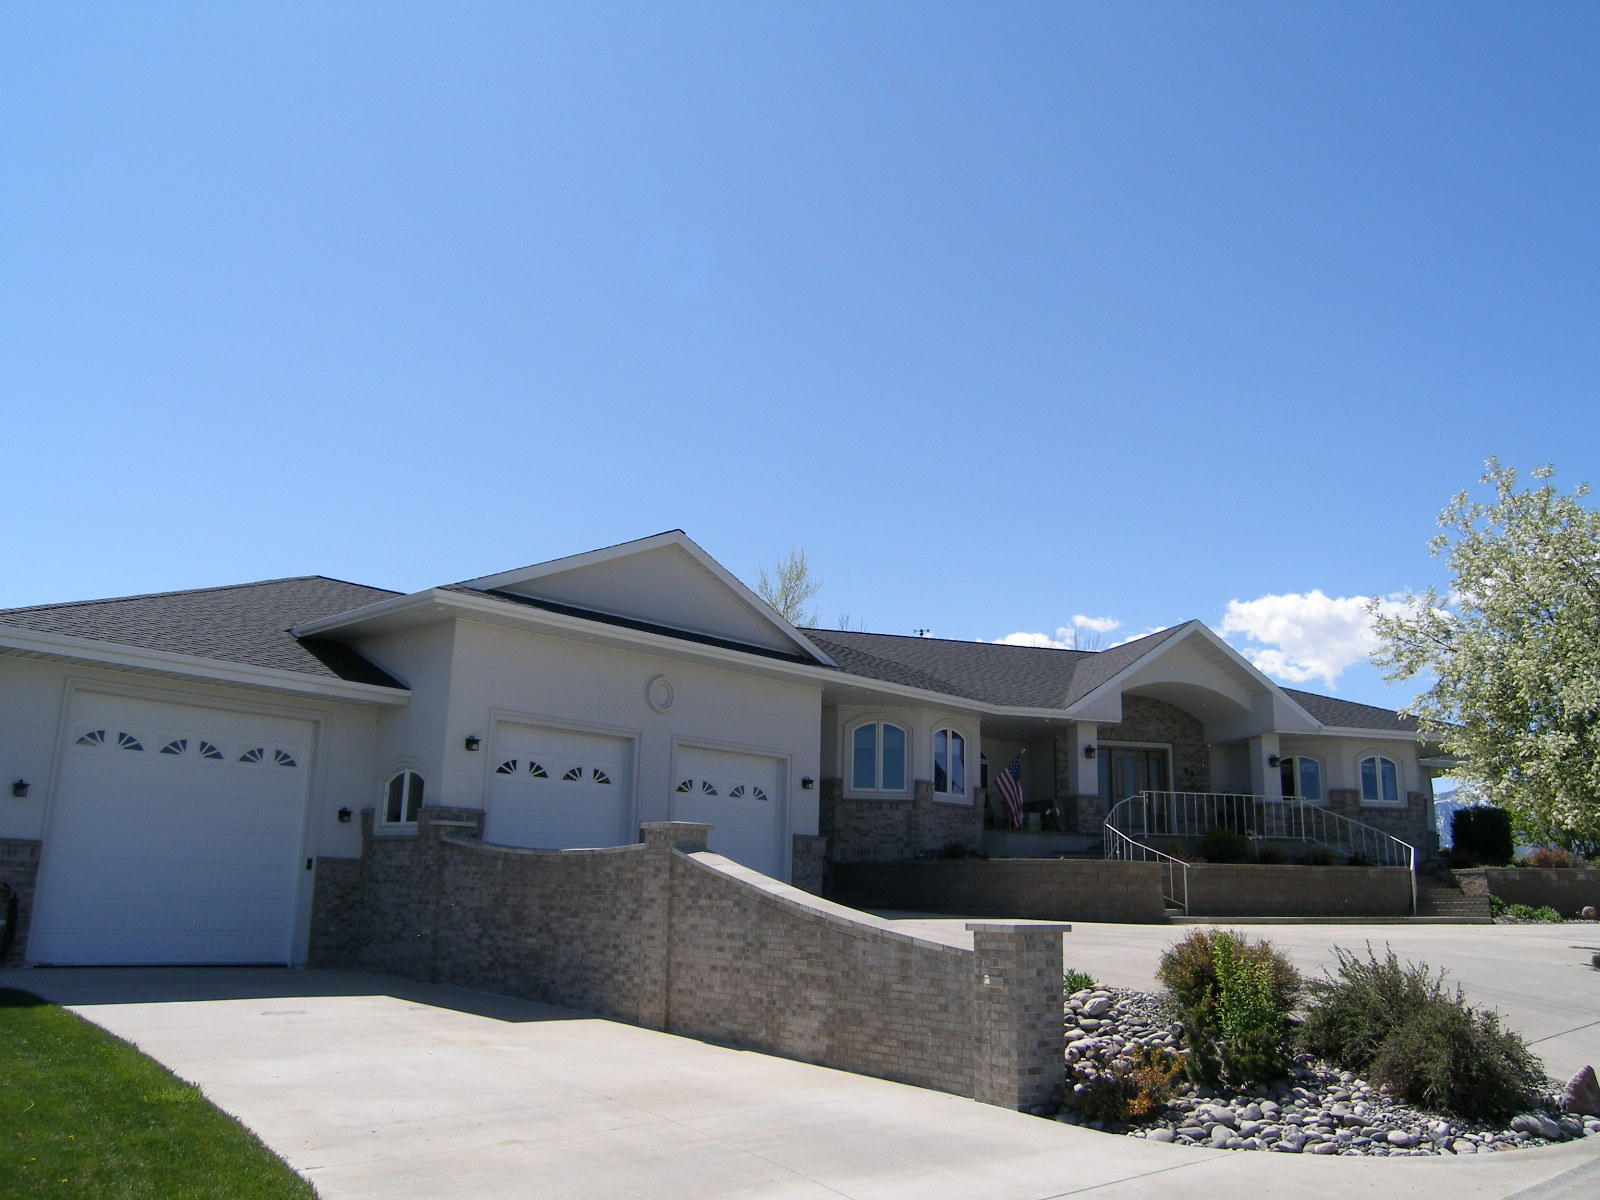 43 Canyon View Drive, Sheridan, Wyoming 82801, 2 Bedrooms Bedrooms, ,3.5 BathroomsBathrooms,Residential,For Sale,Canyon View,19-182